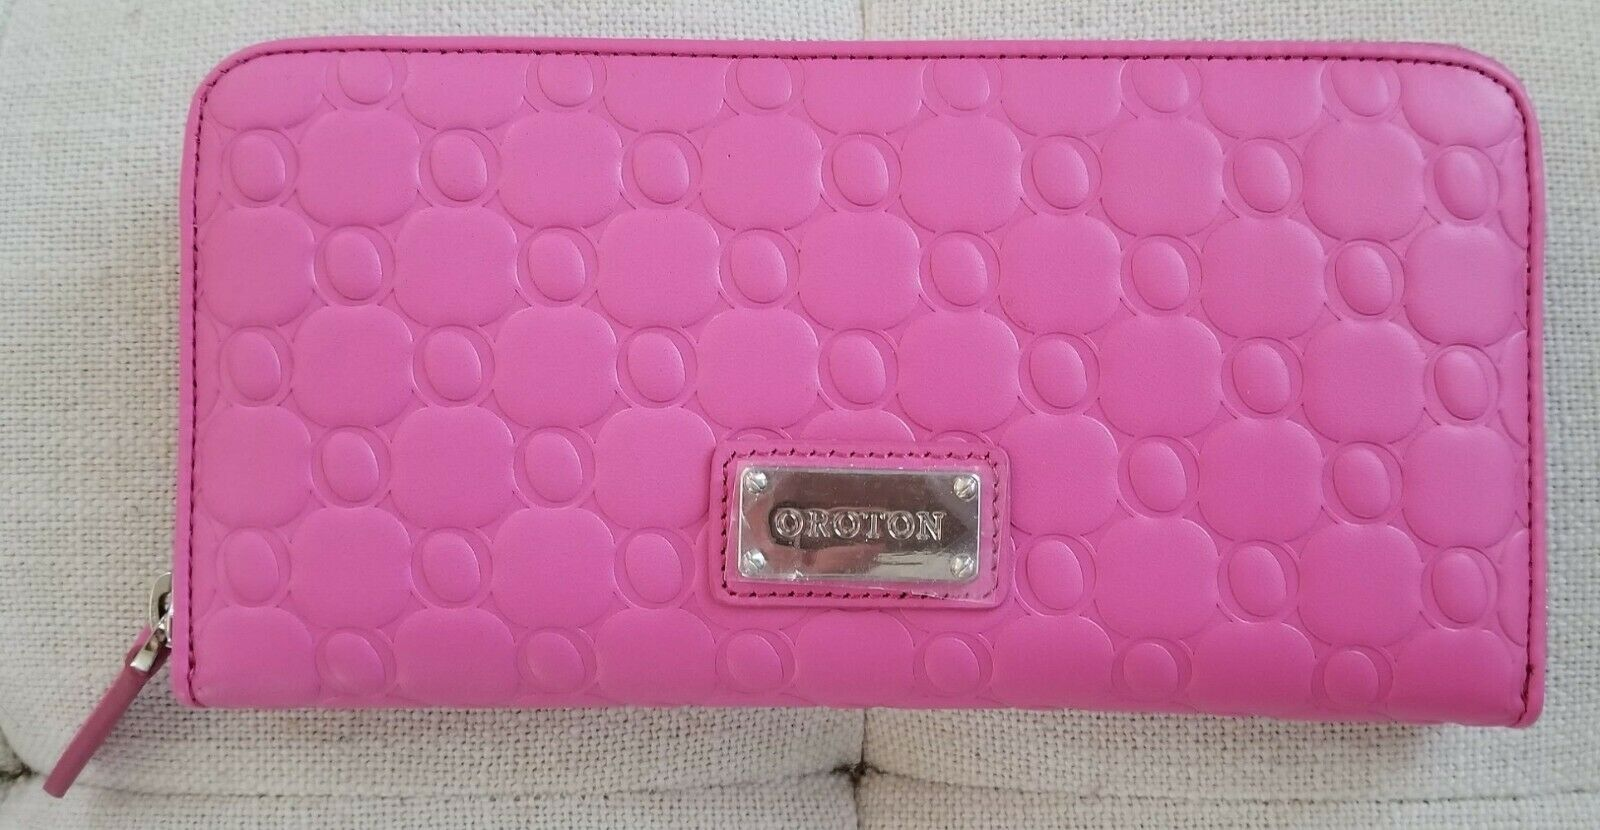 NEW! Oroton Roche Large Multi Pocket Leather Wallet Classic Pink